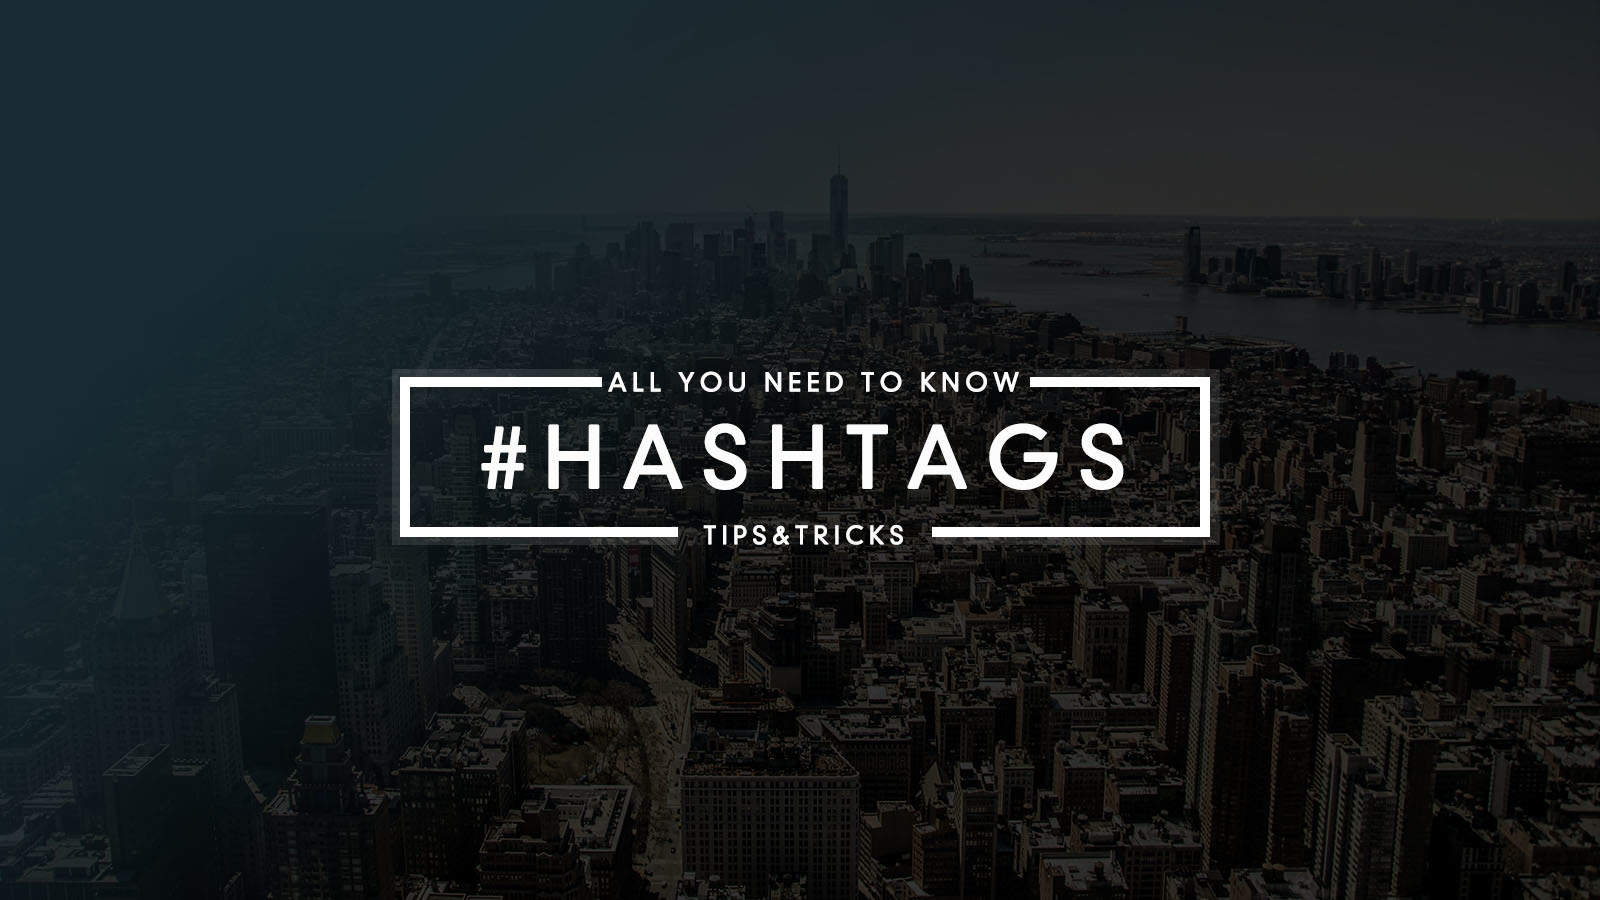 How to Use Hashtags to Promote your Brand